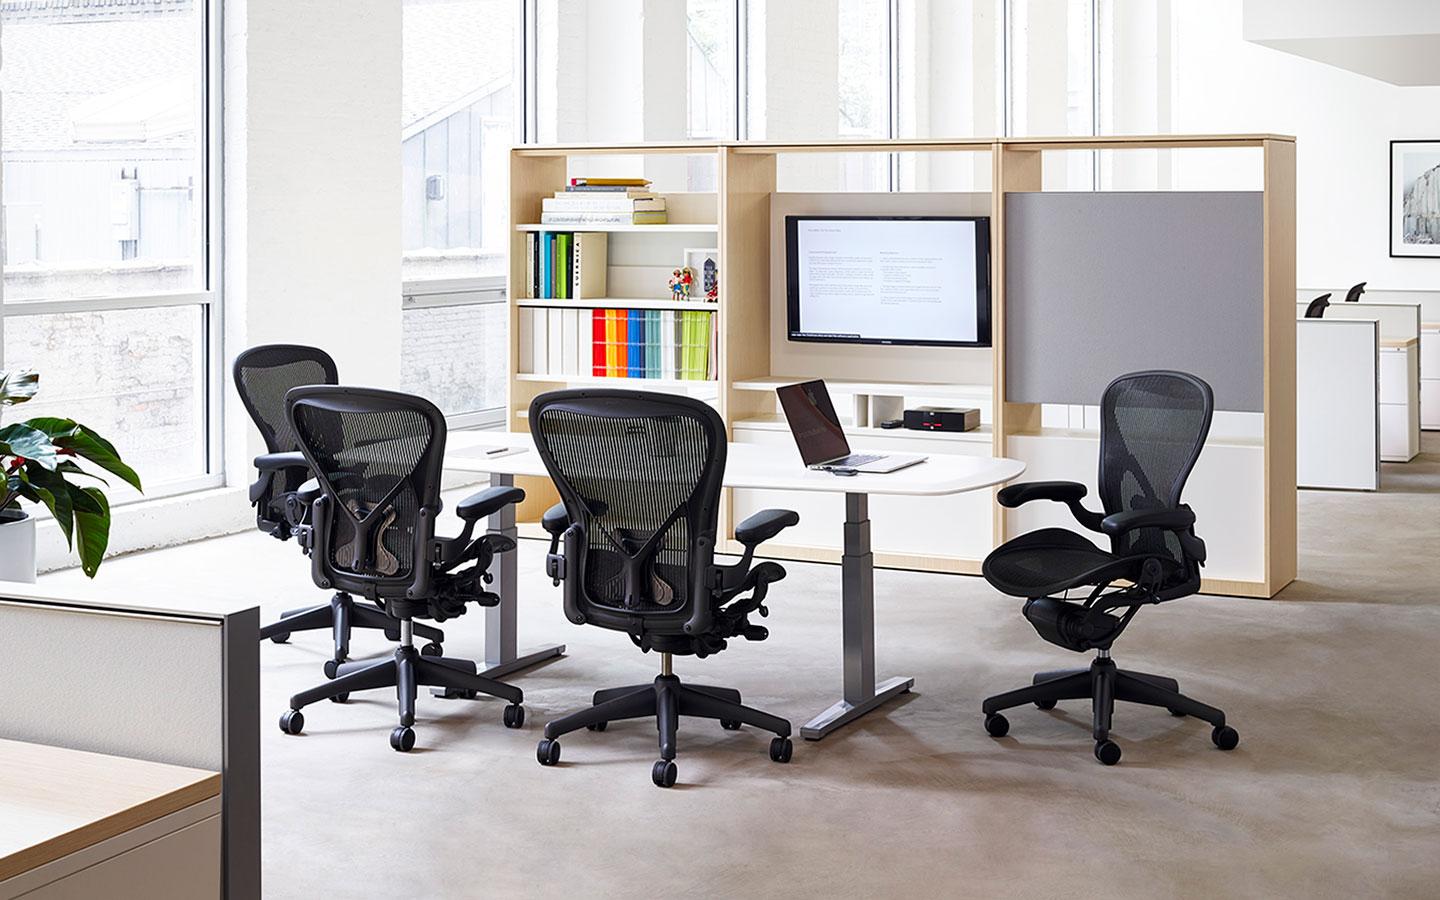 Buying An Aeron Chair? Read This First.